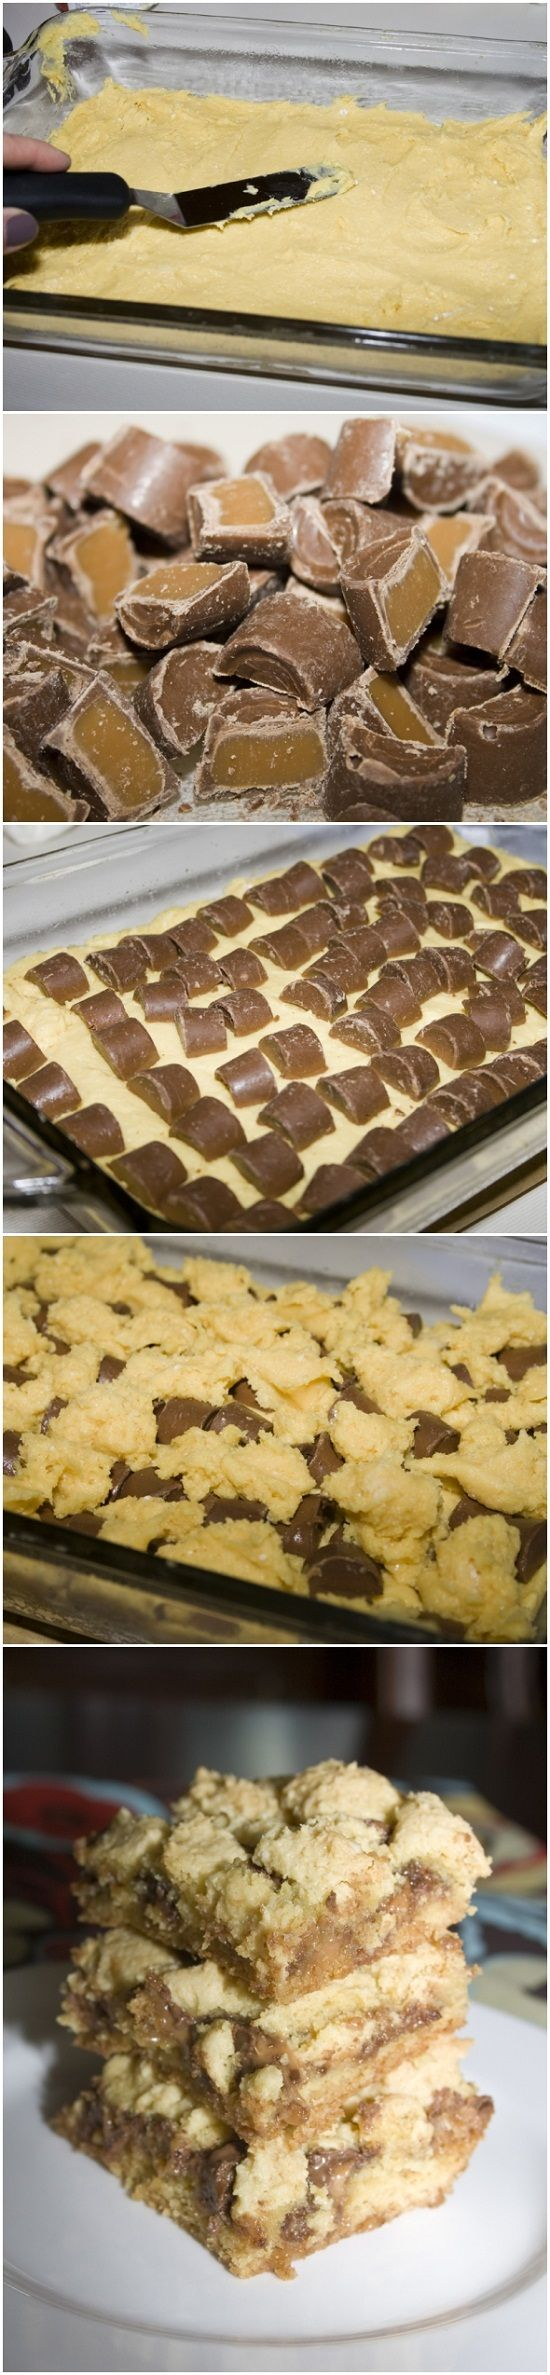 Nothing better than rolo cake bars to satisfy this chocolate lover! #emealsbakes